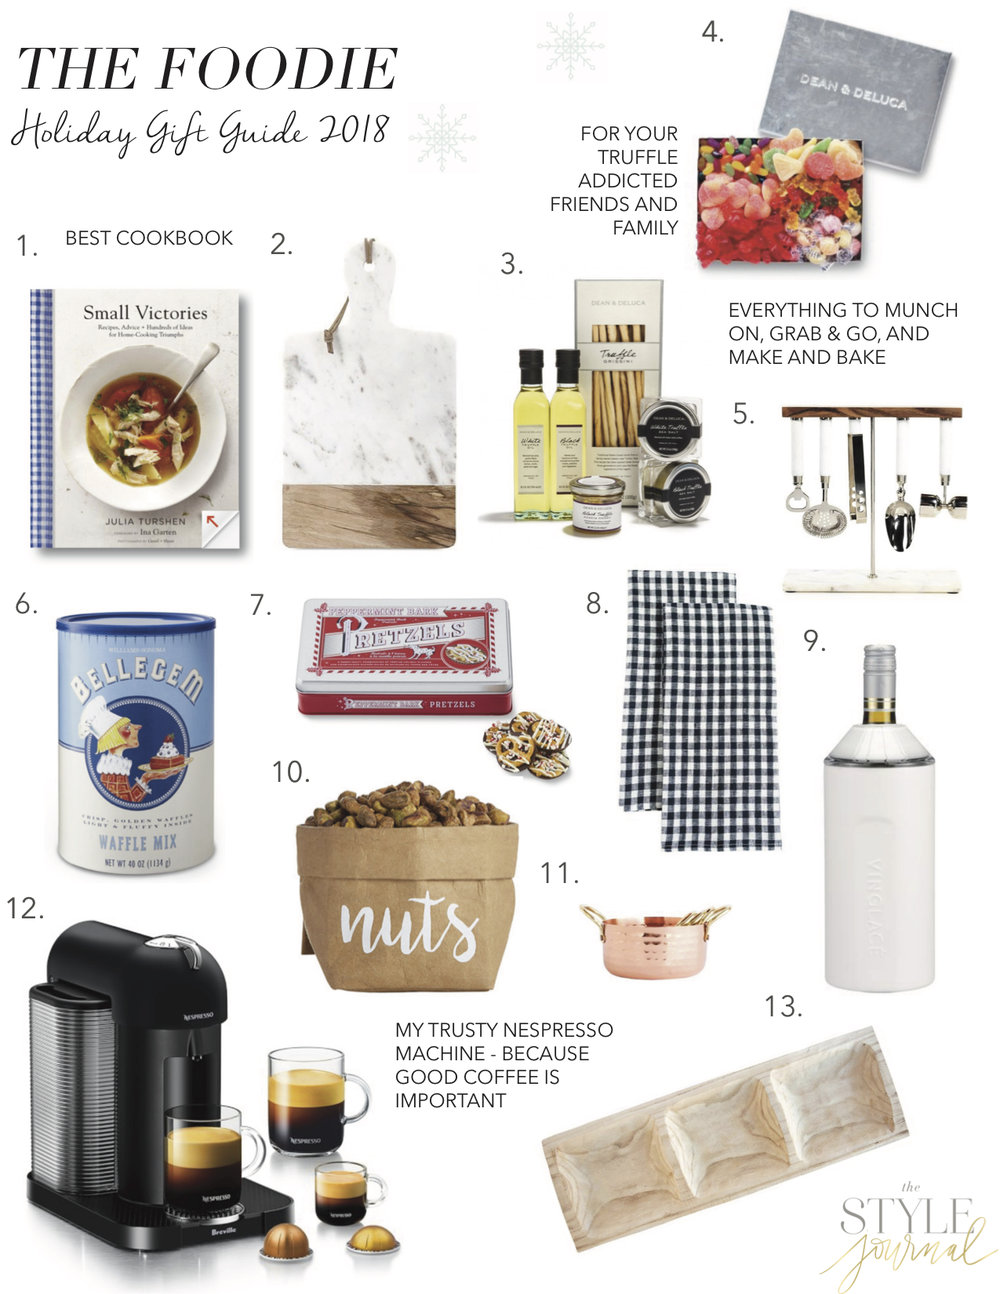 thefoodie-holiday gift guide 2018.jpg